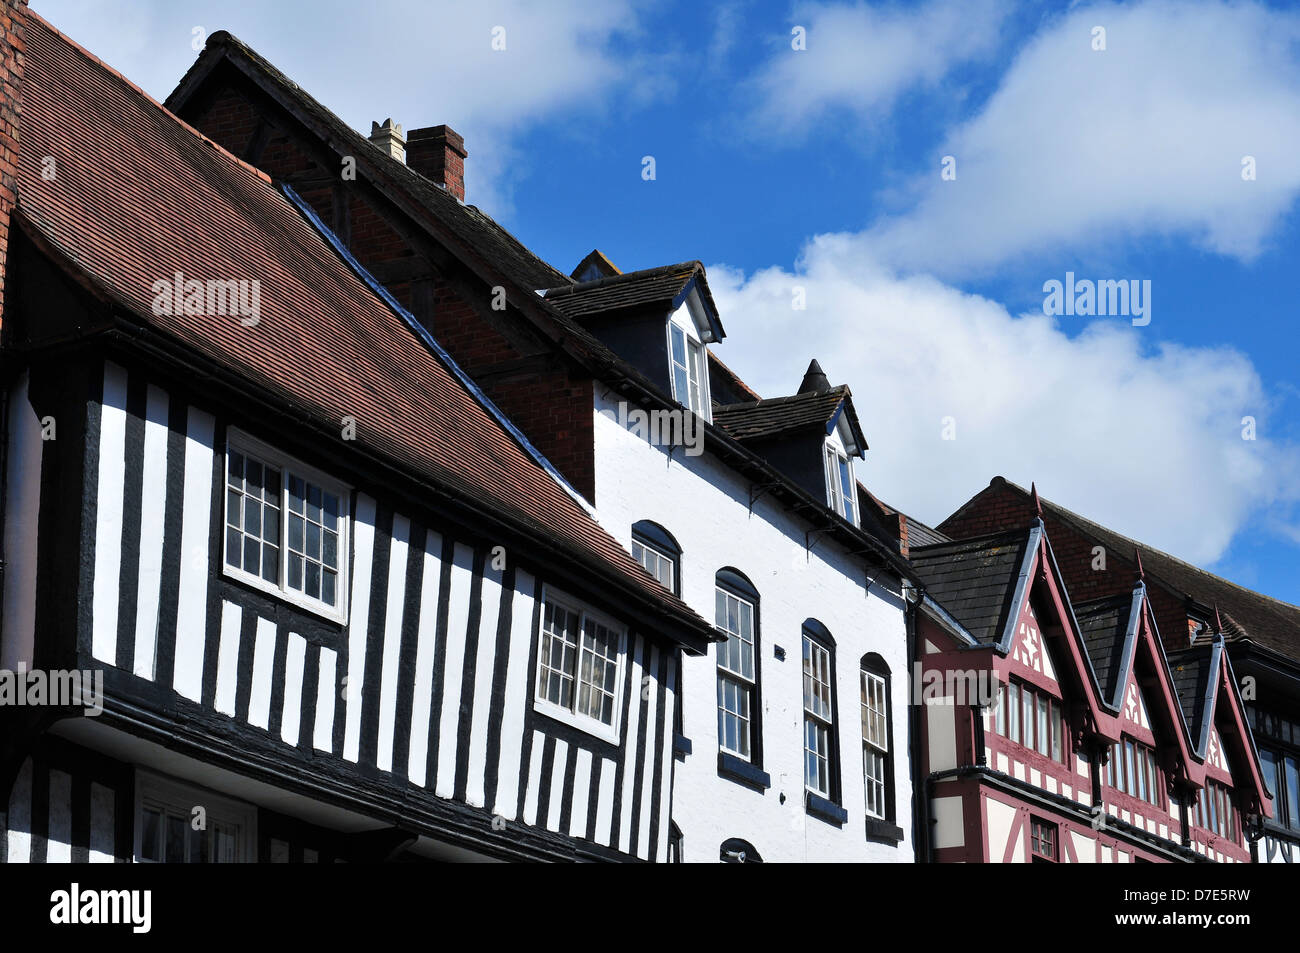 Mixed roof line of historic houses in Mardol, Shrewsbury, UK. Half-timbered buildings and brick properties stand - Stock Image